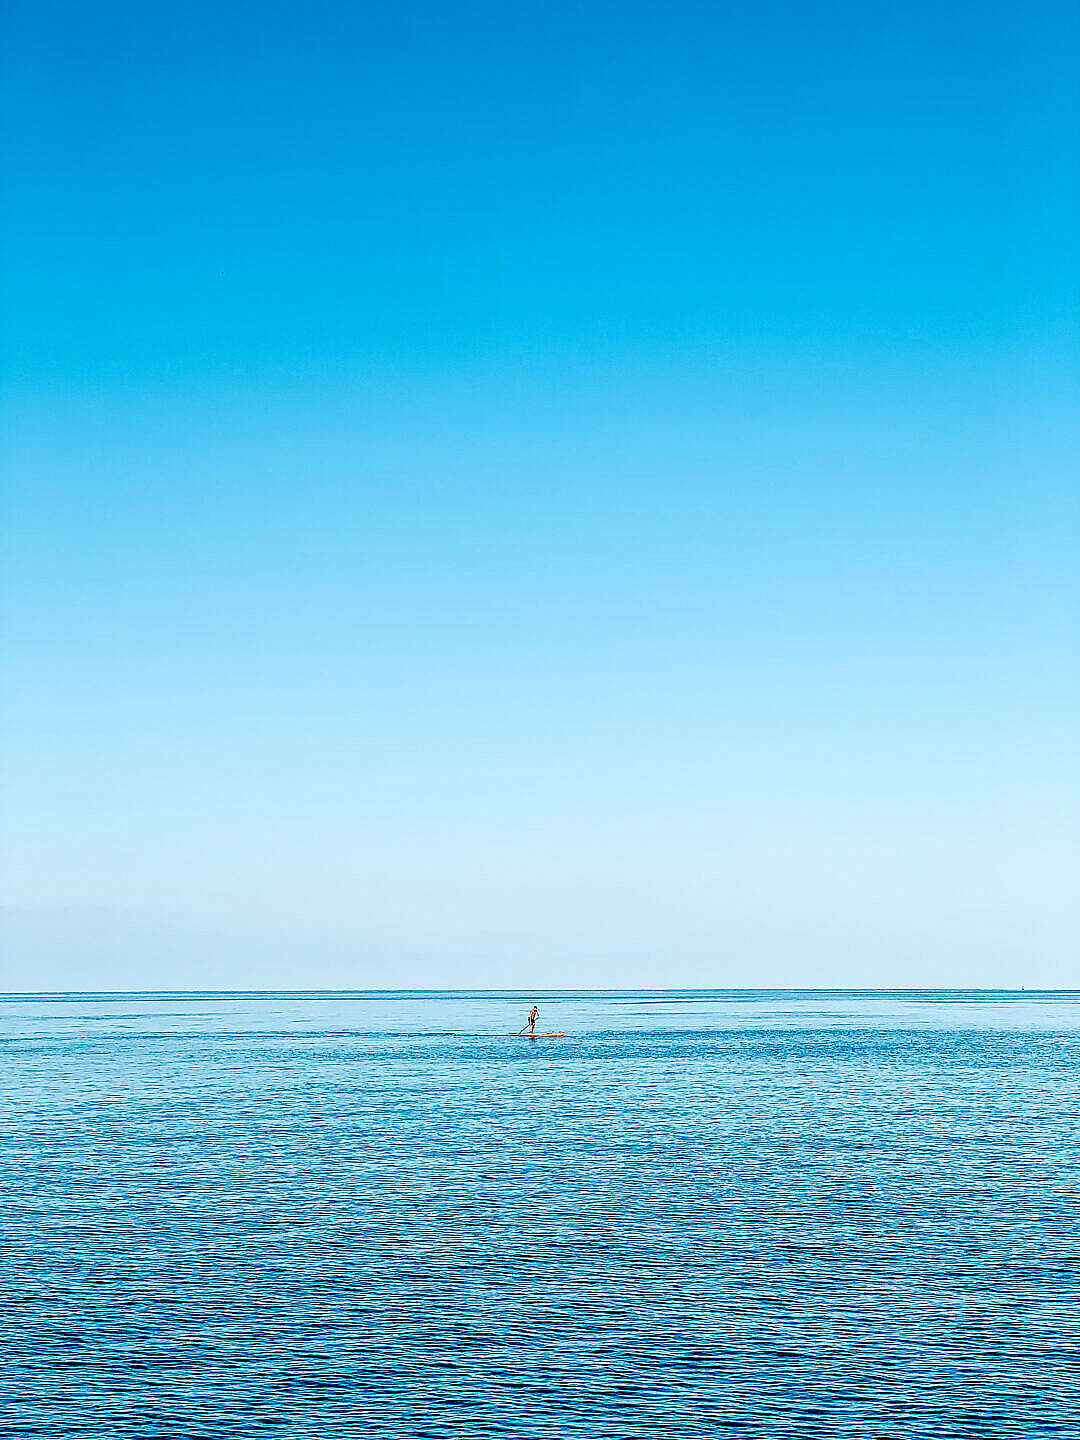 Download Man on a Paddleboard on the Open Sea FREE Stock Photo